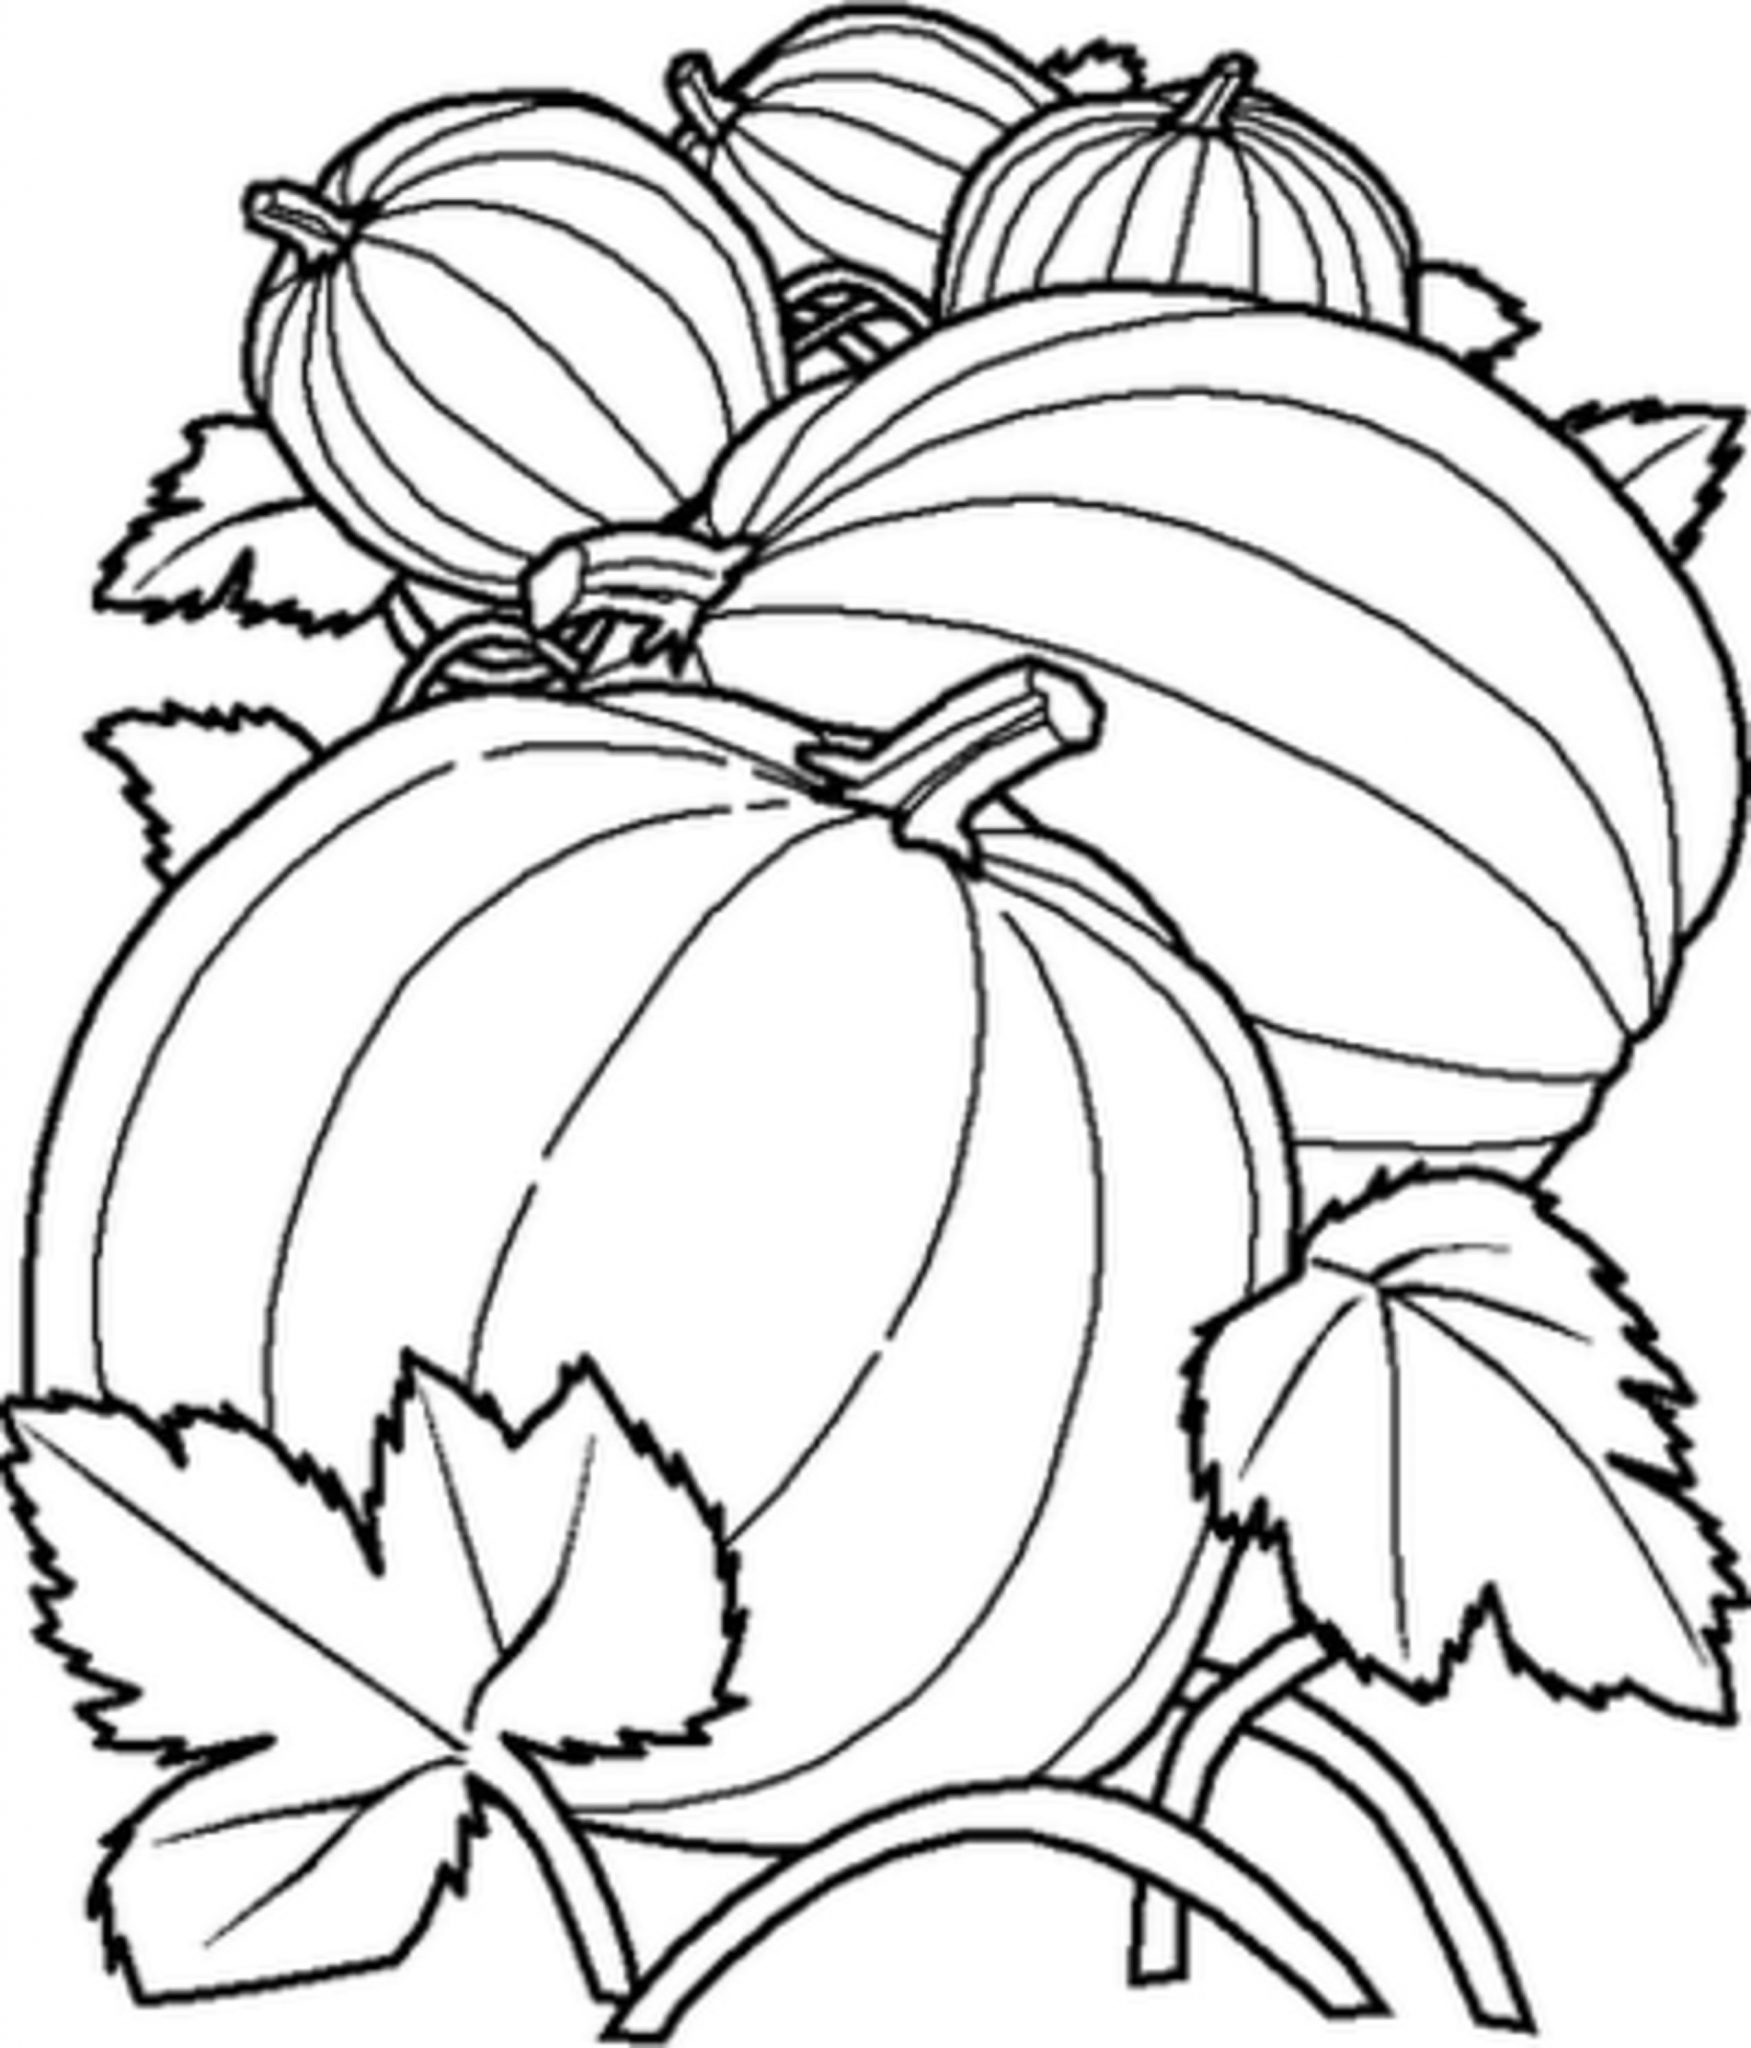 free coloring pages of pumpkins free printable pumpkin coloring pages for kids cool2bkids pages free coloring of pumpkins